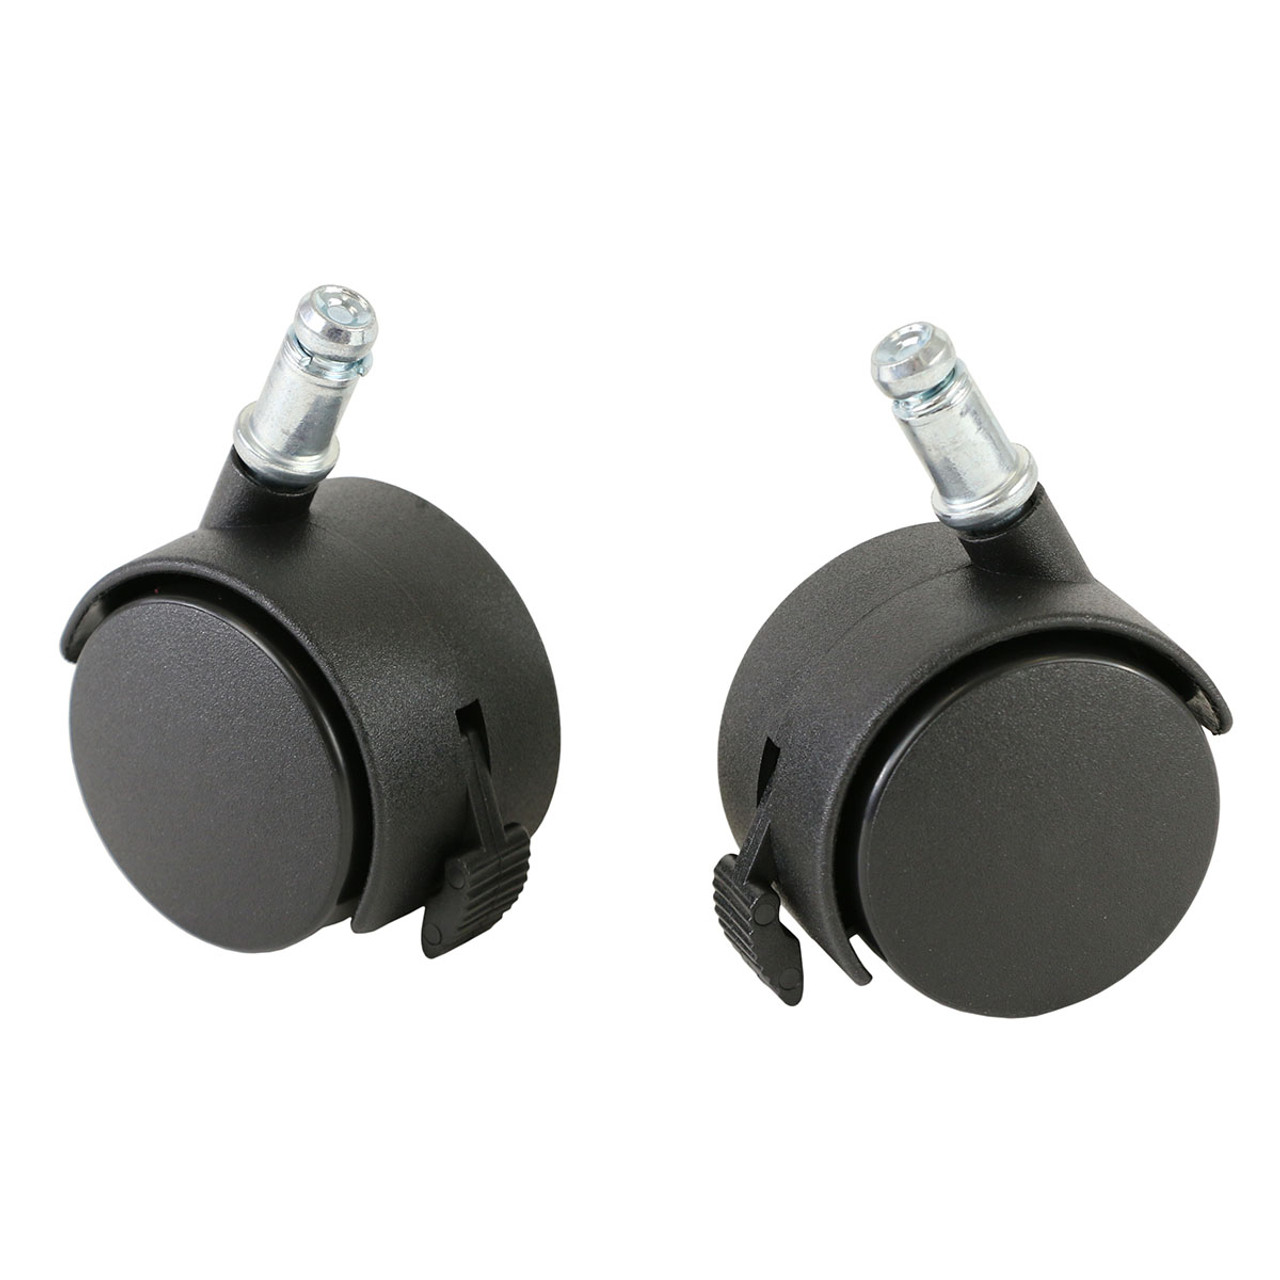 CanDo¨ Ball Chair - Accessory - Locking Casters, pair